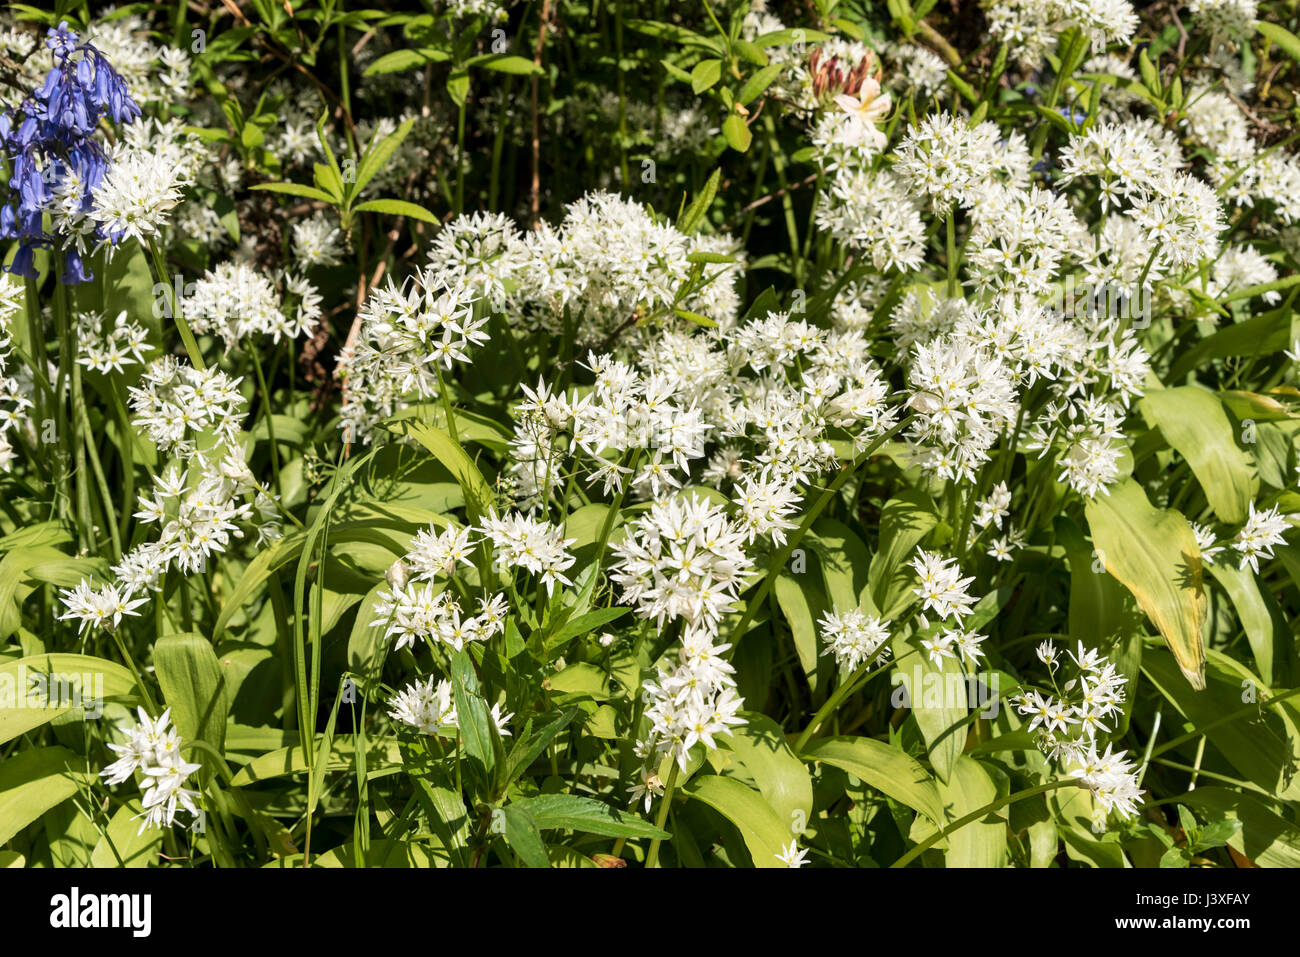 Wild garlic plant flowers - Stock Image